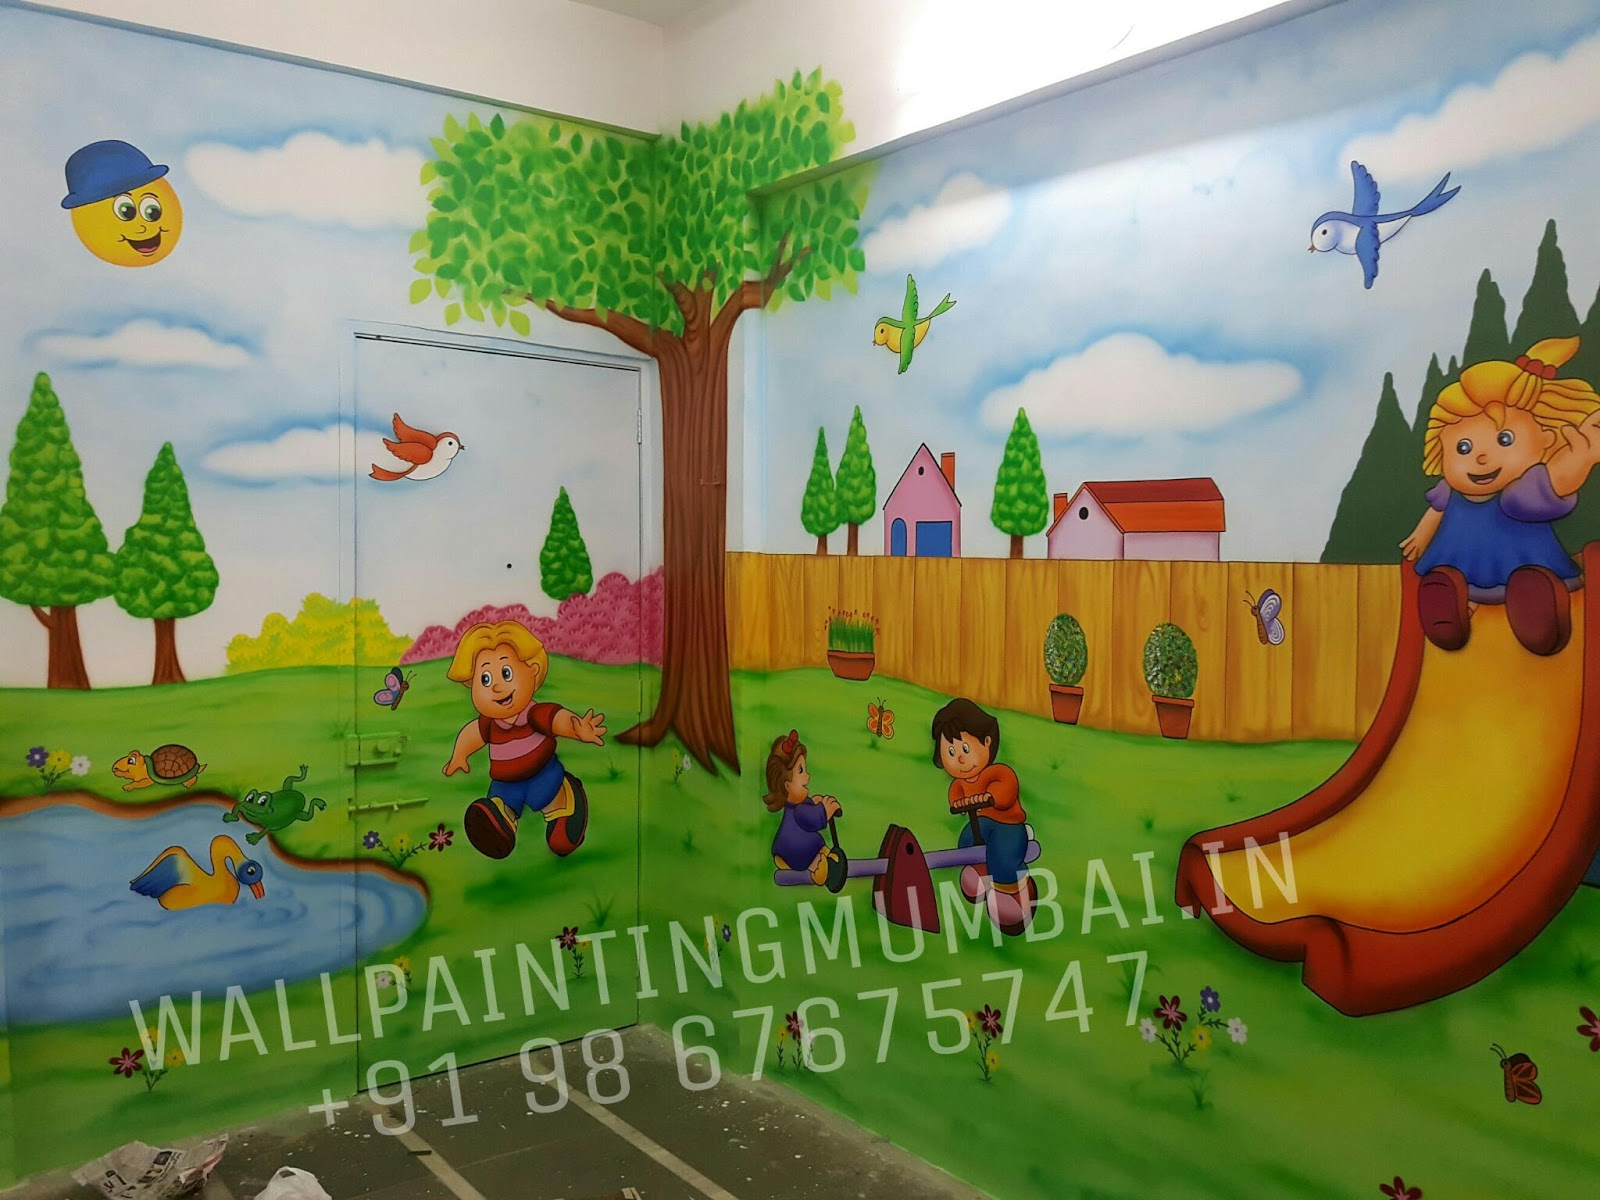 Play school wall painting play school classroom best for Classroom wall mural